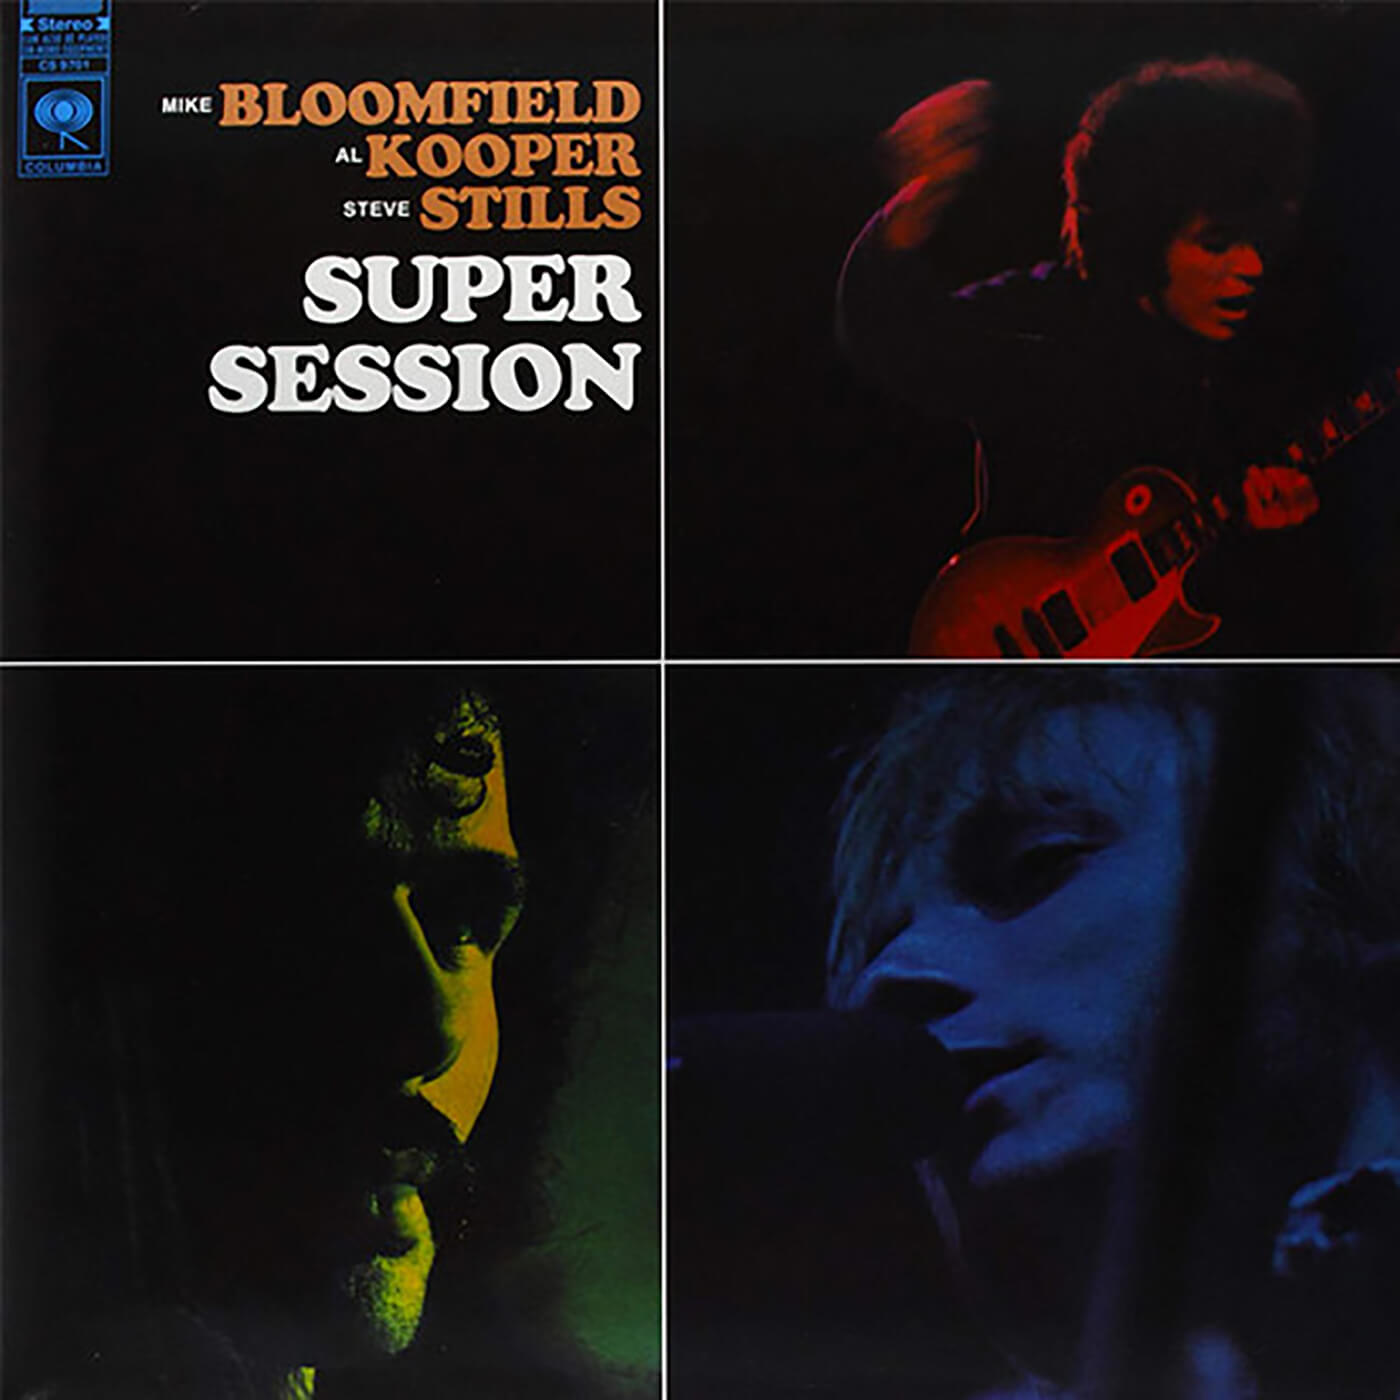 Super Sessions by Mike Bloomfield, Al Kooper and Stephen Stills